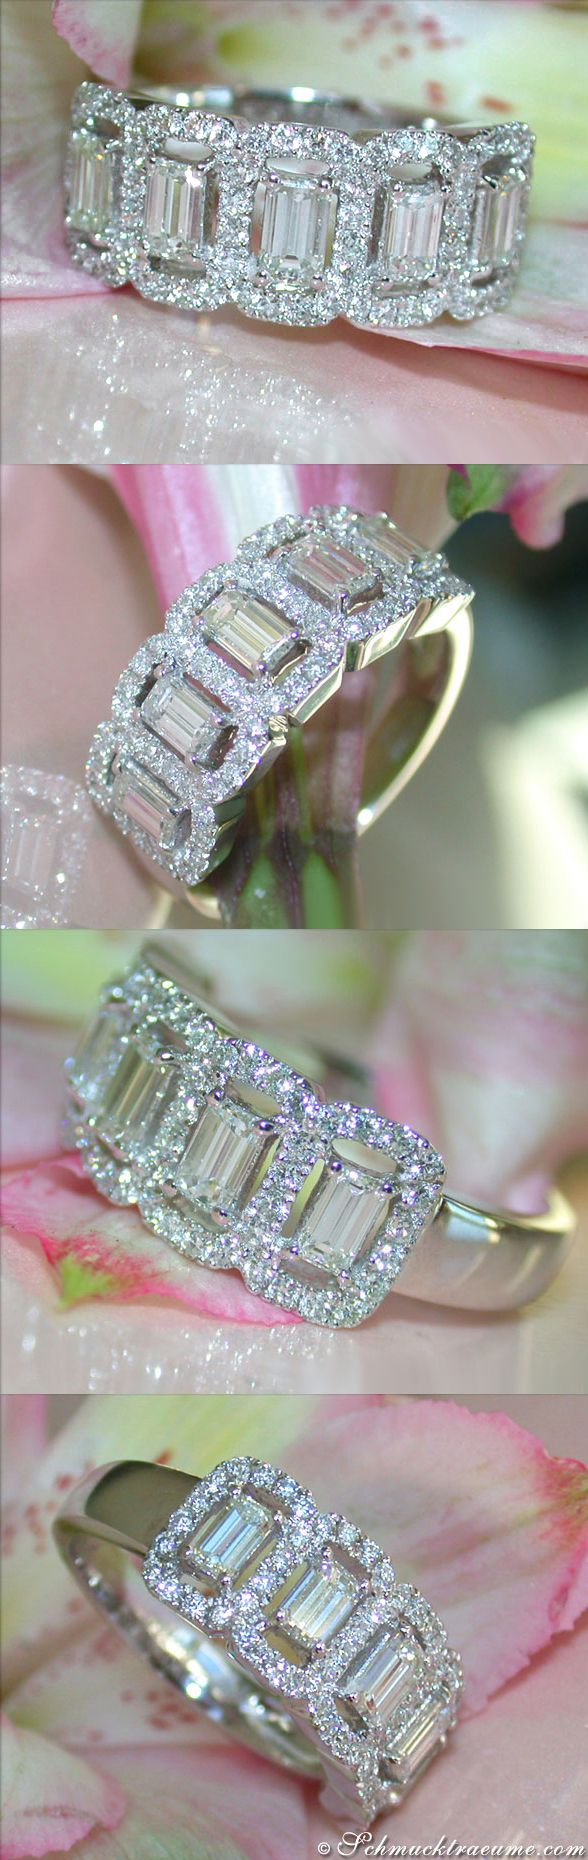 Picture Perfect Diamond Band | 1.40 ct. G VS/VVS | Whitegold 18k - schmucktraeume.com Like: https://www.facebook.com/Noble-Juwelen-150871984924926/